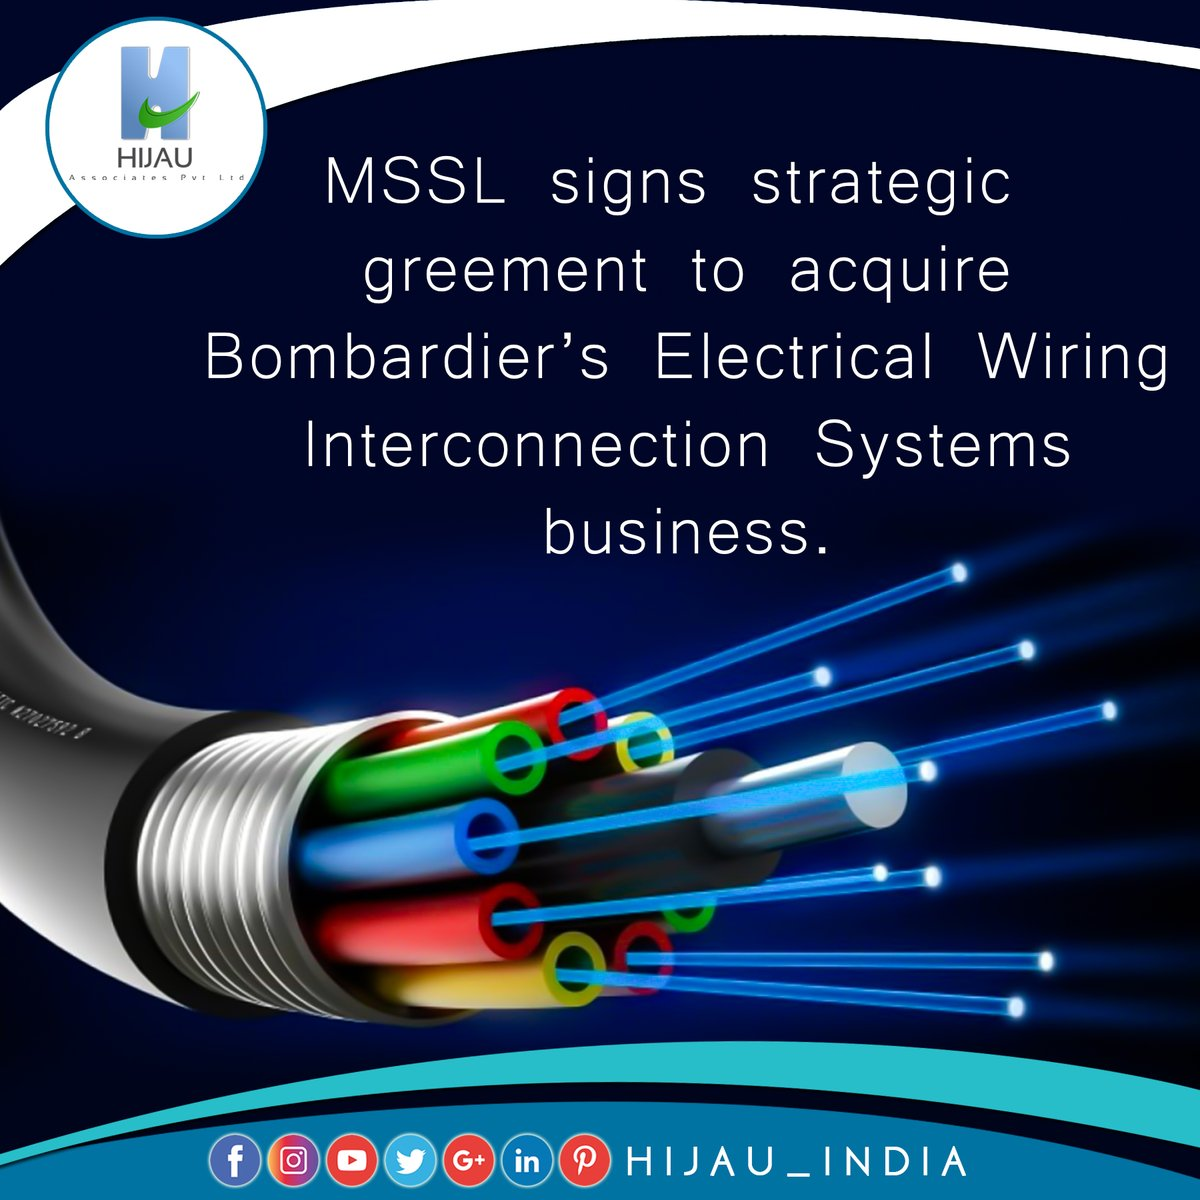 MSSL signs strategic agreement to acquire Bombardier's Electrical Wiring Interconnection Systems business  #hijauindia #businessconsultant #businessideas #makeinindia #businessopportunities #newbusiness #india #businessnews #businessnewsupdates #startups #fdi #investindia https://t.co/2ekPzfH1UE